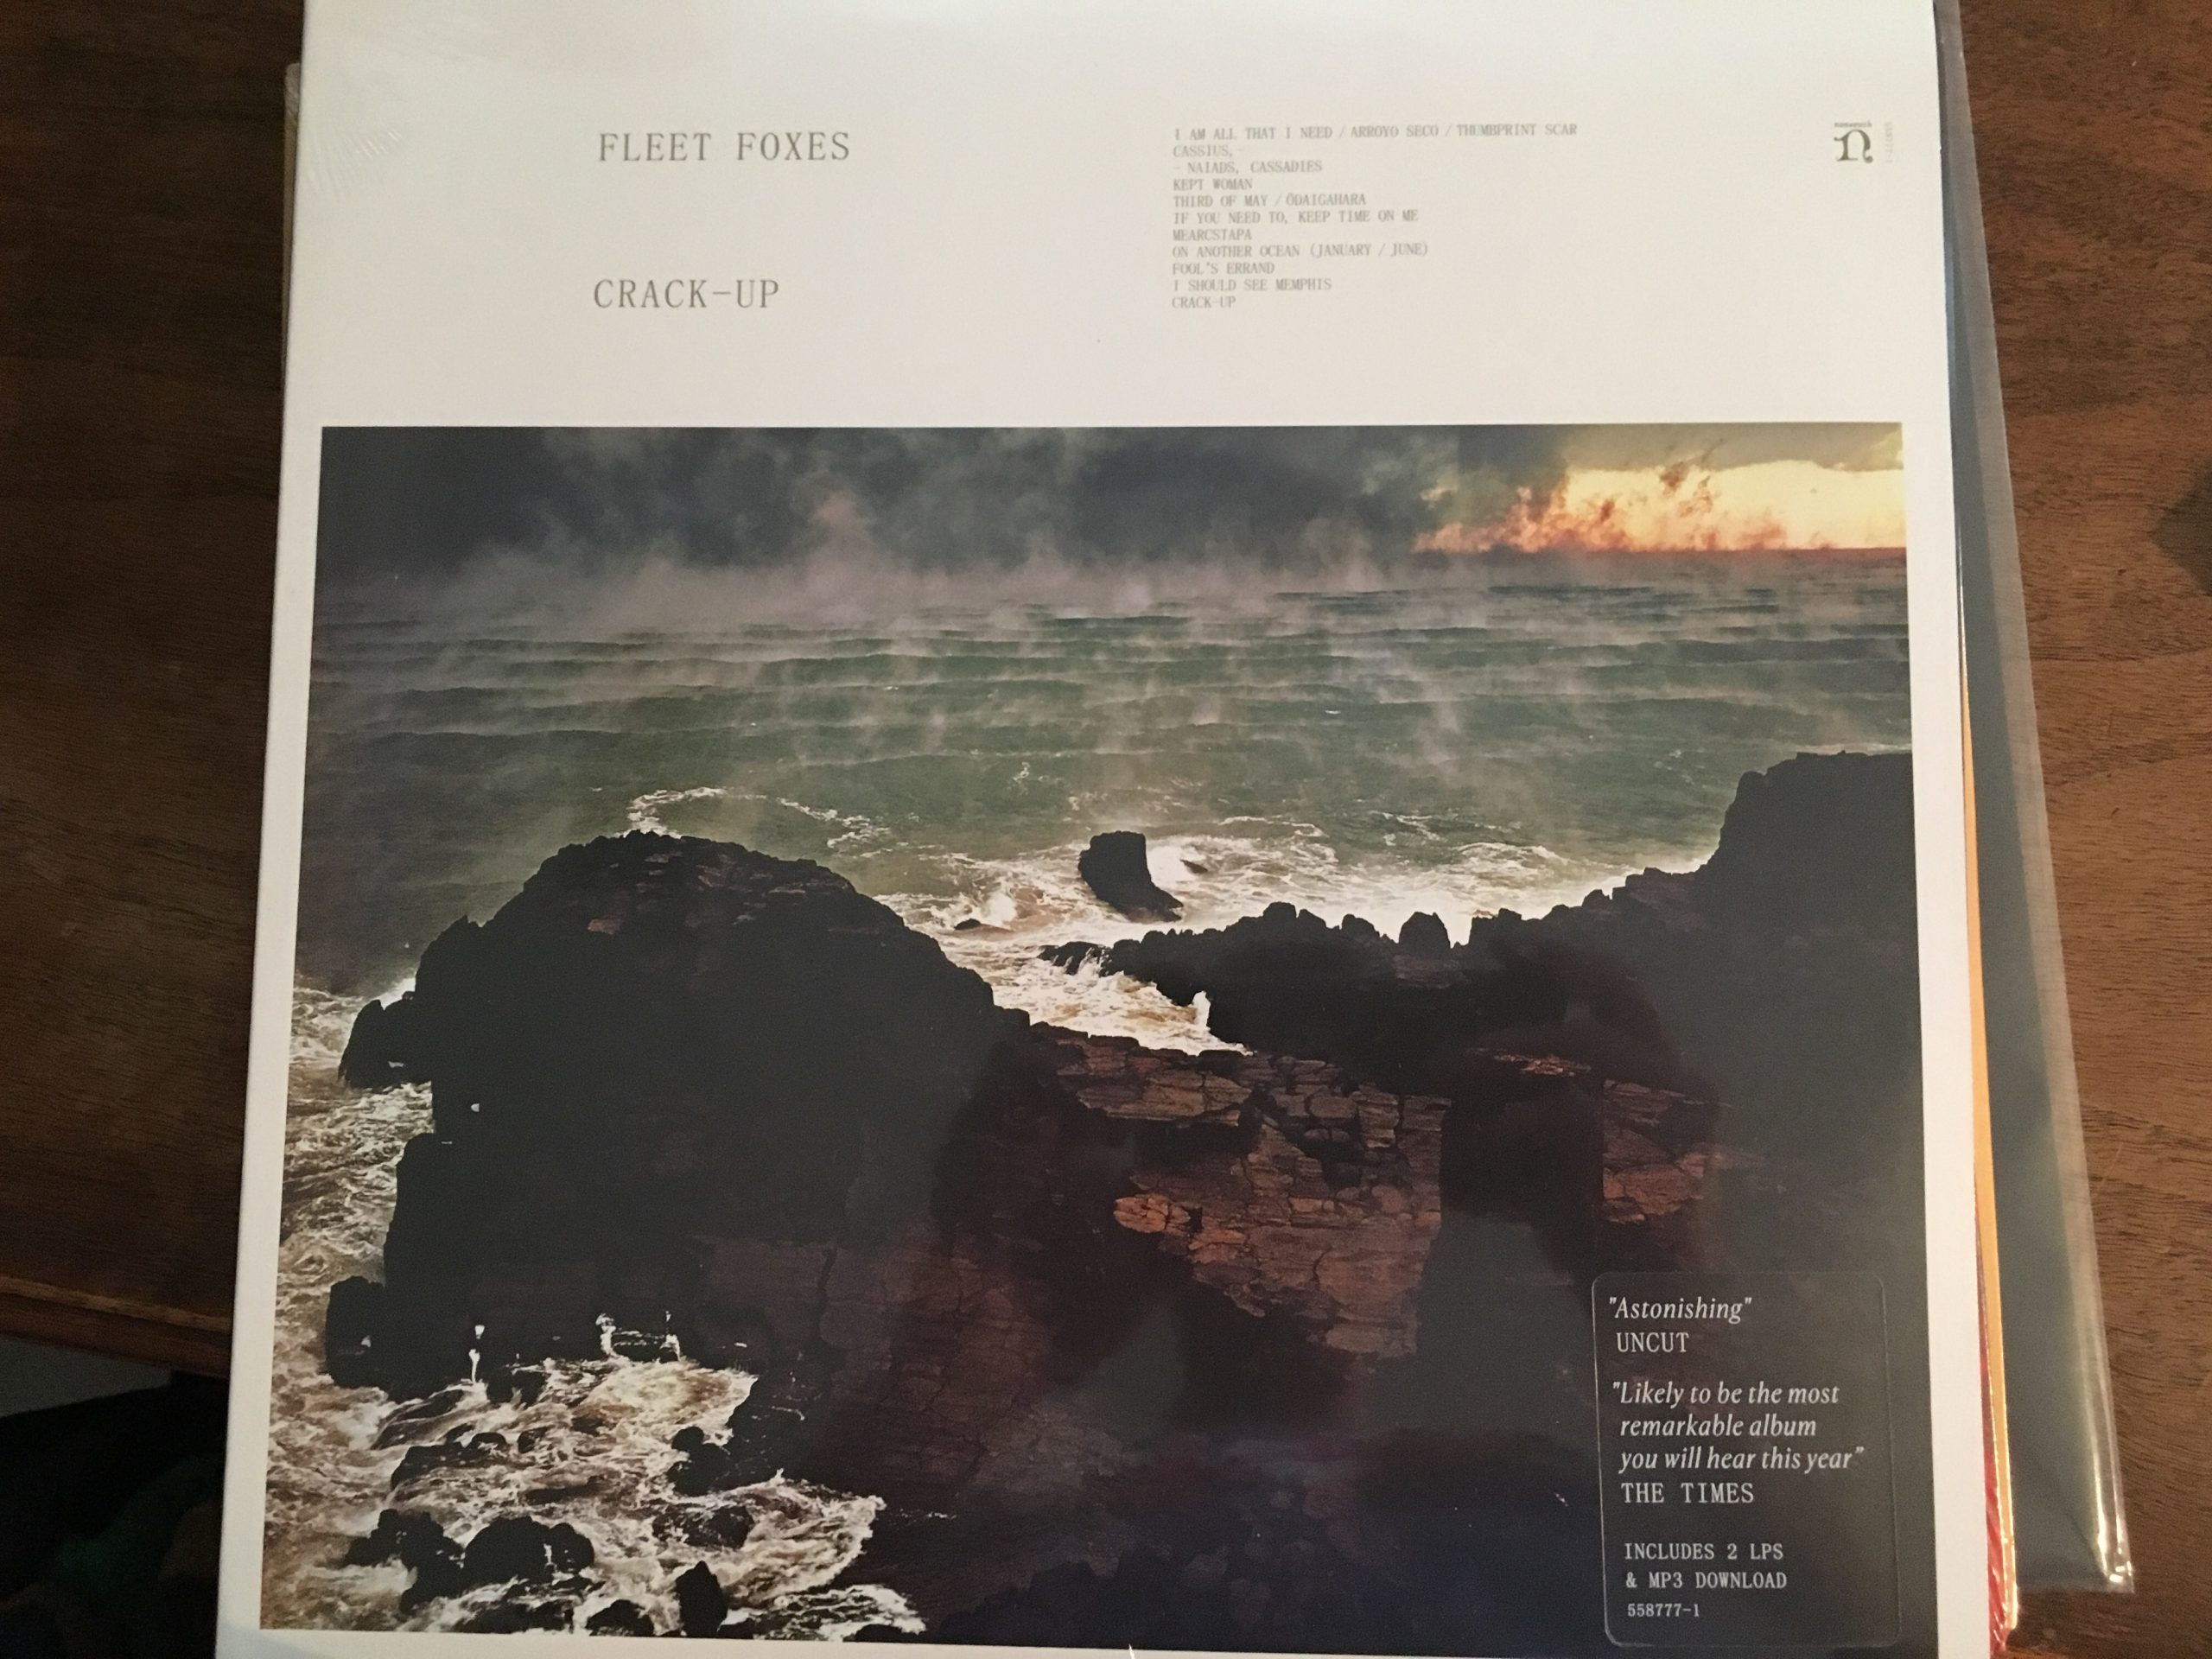 Fleet Foxes - Crack-Up Album Cover